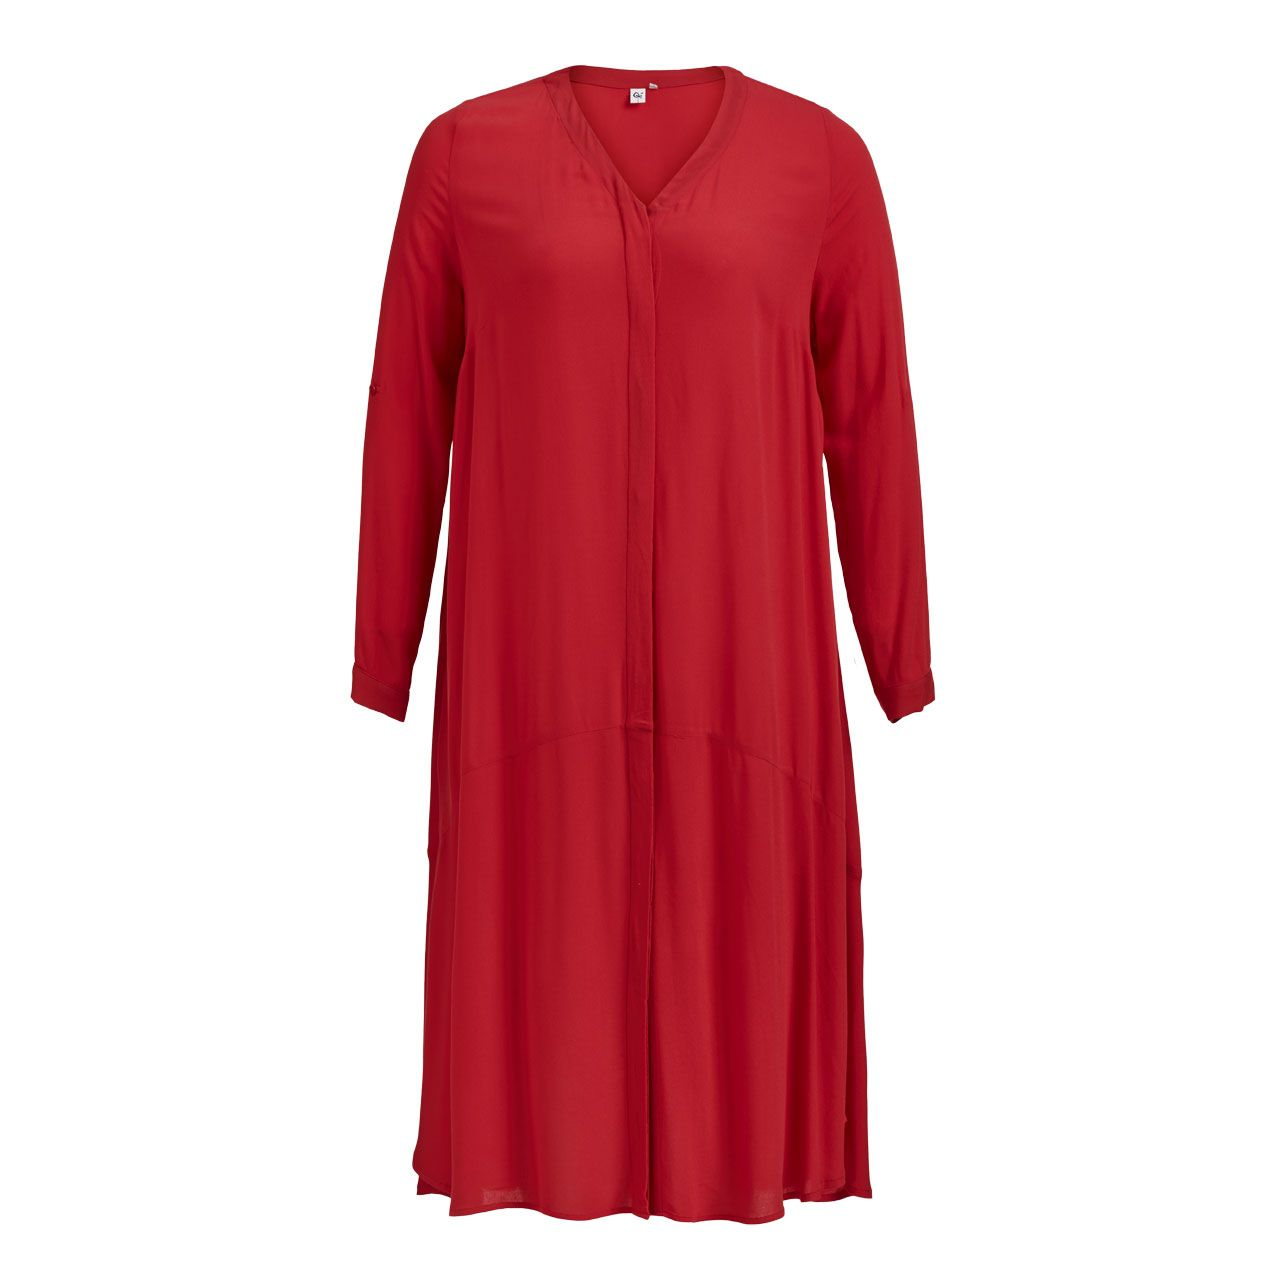 Qúe red shirt dress with long sleeves plus size fashion